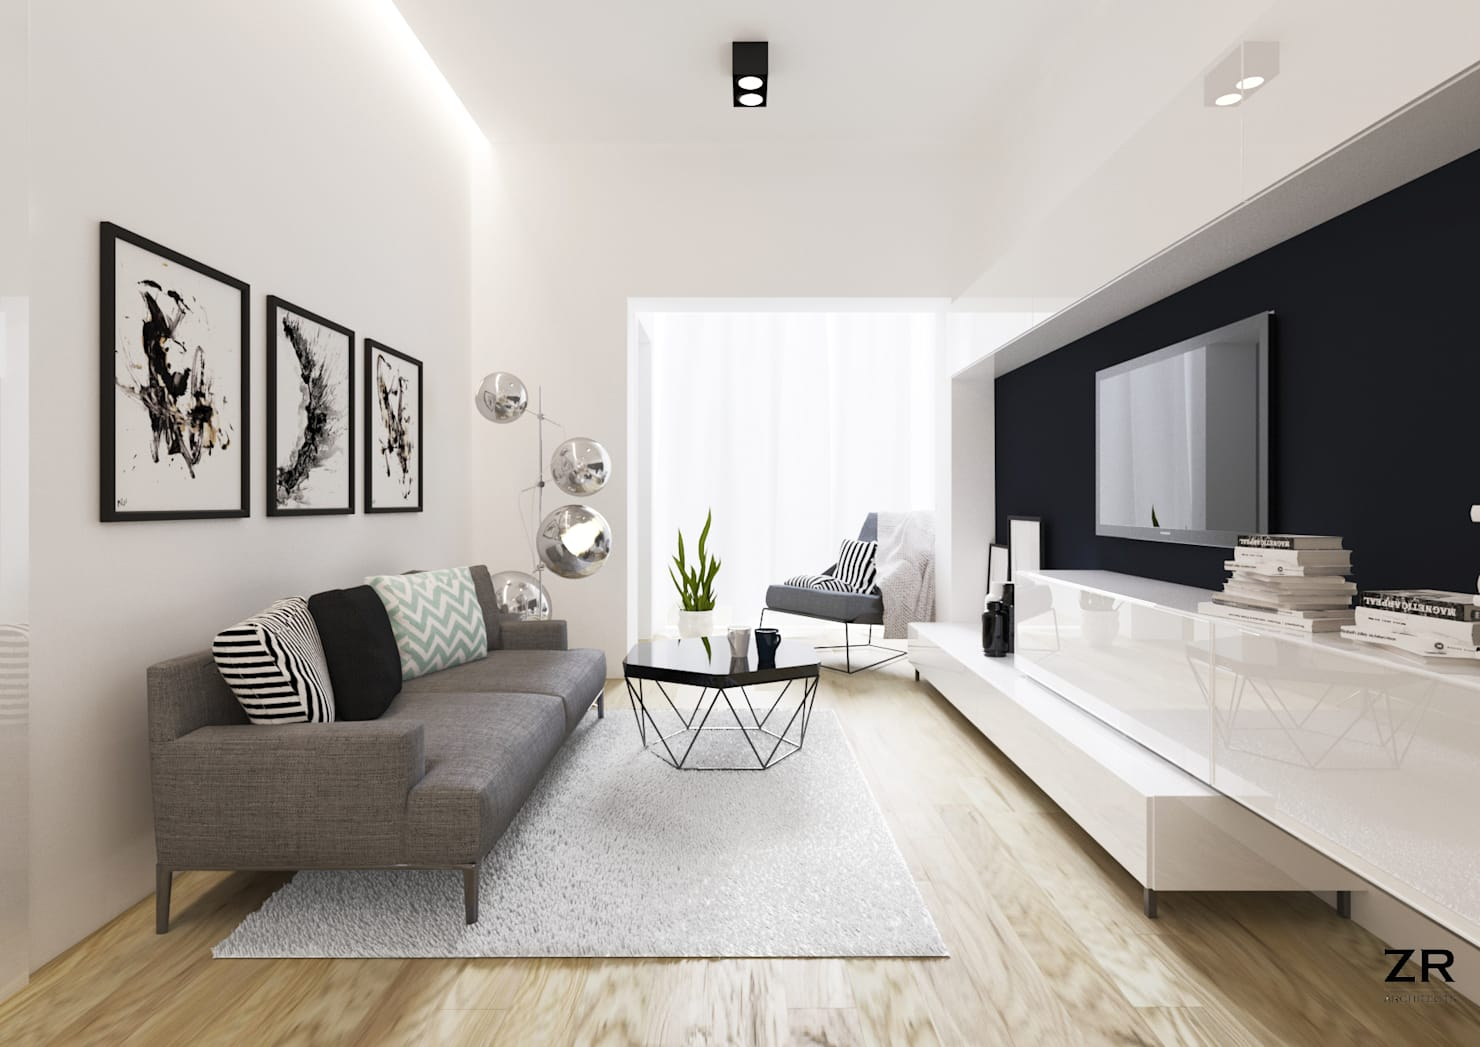 Making your home look grown-up and sophisticated